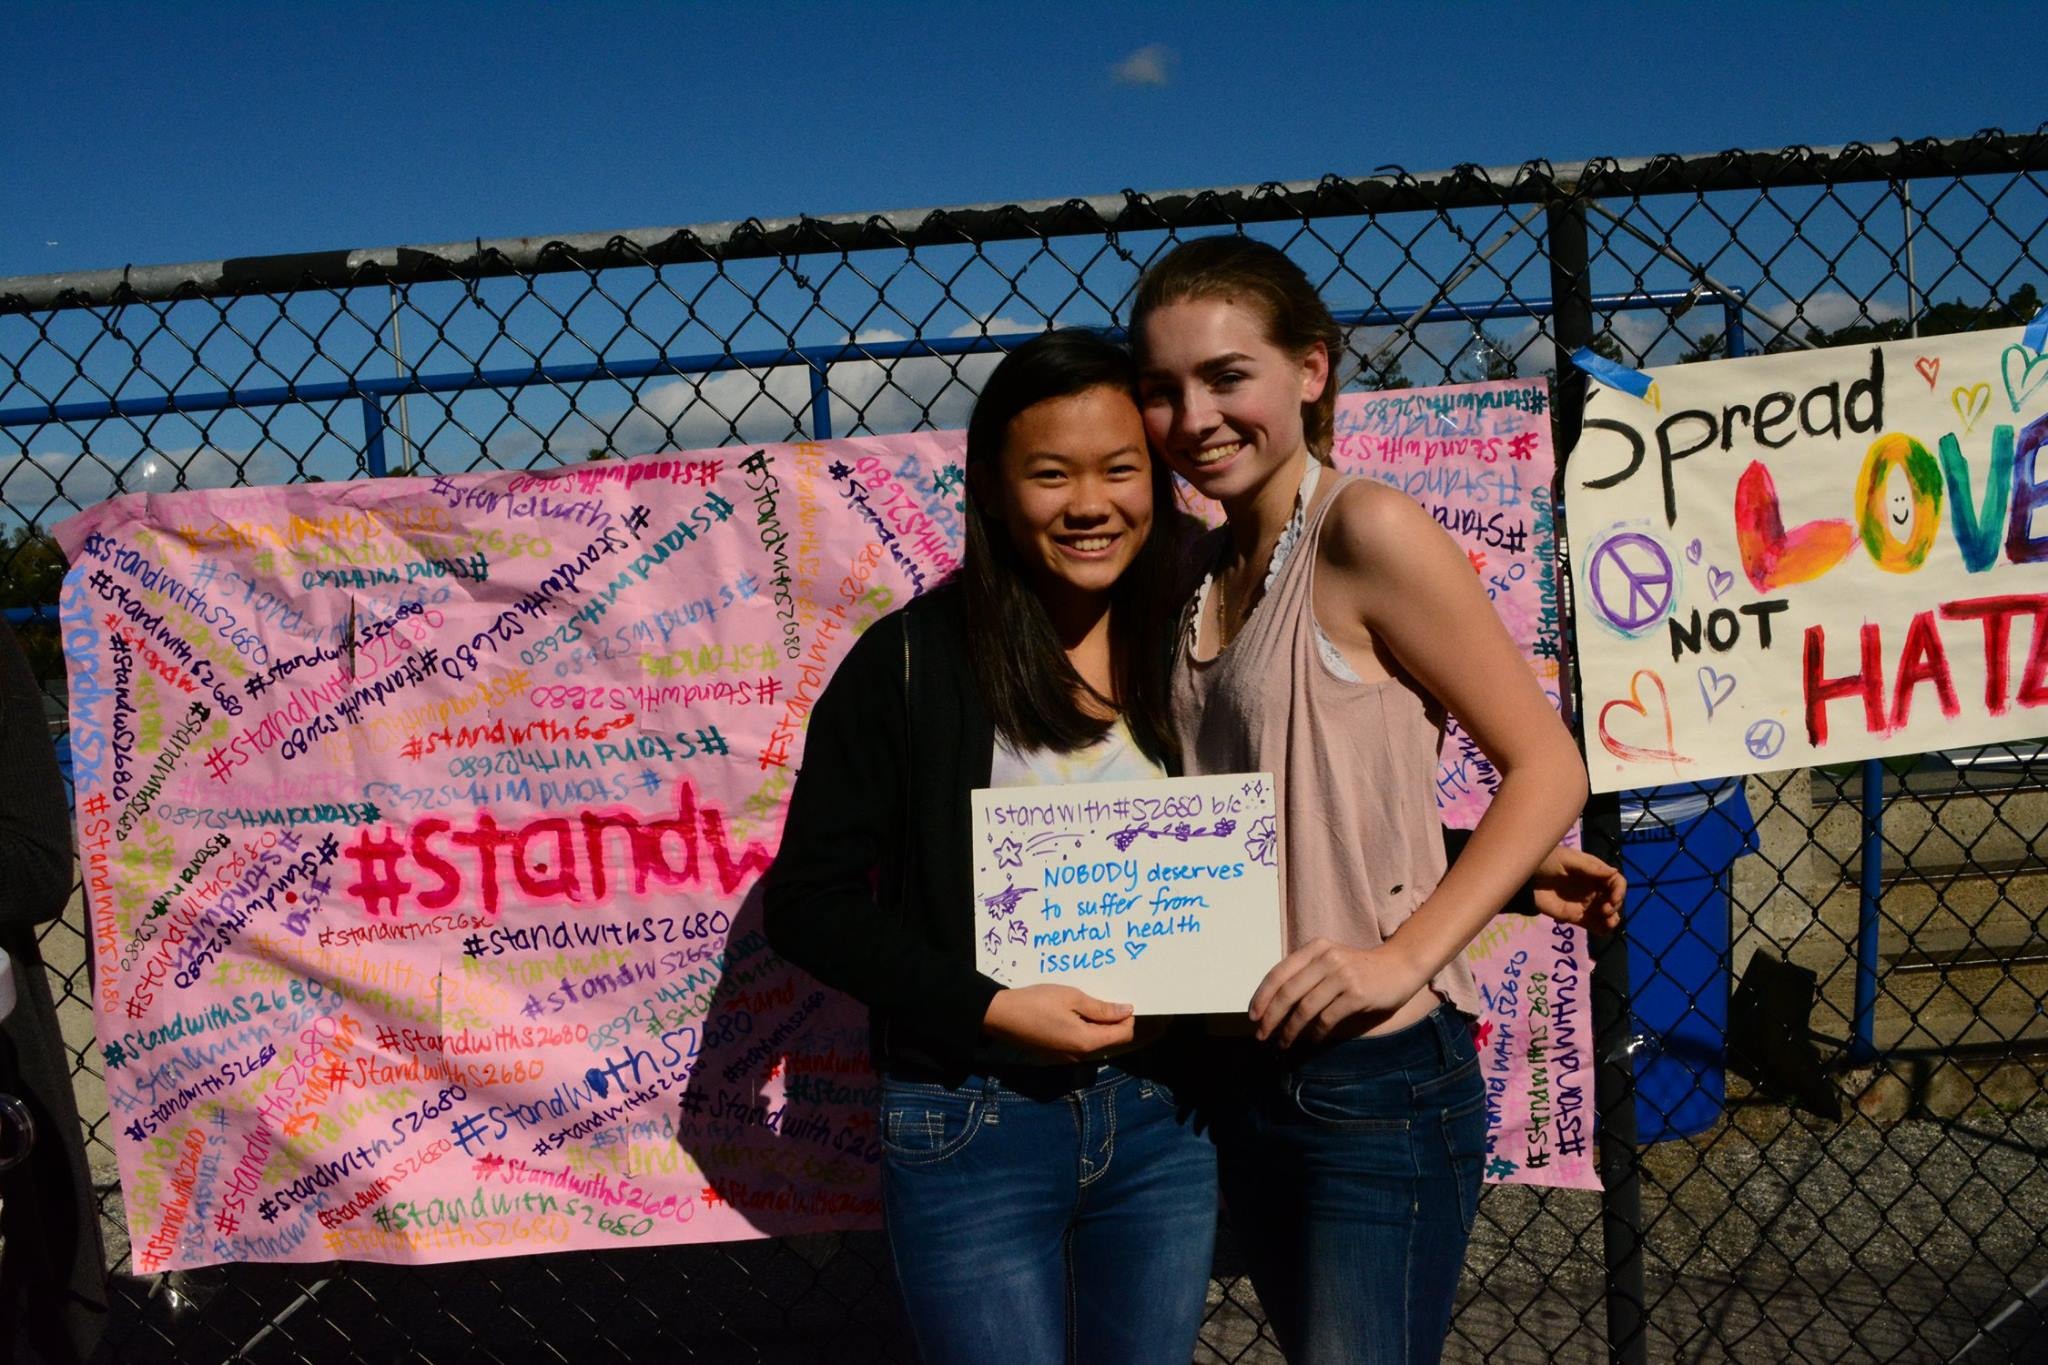 Sophomores Audrey Crook and Chloe Wen advocate for s2680, the  Mental Health Reform Act of 2016. Girl Up, along with Feminsim Club and Mental Health Awareness Club, organized this event to gain signatures for the act and support the cause.